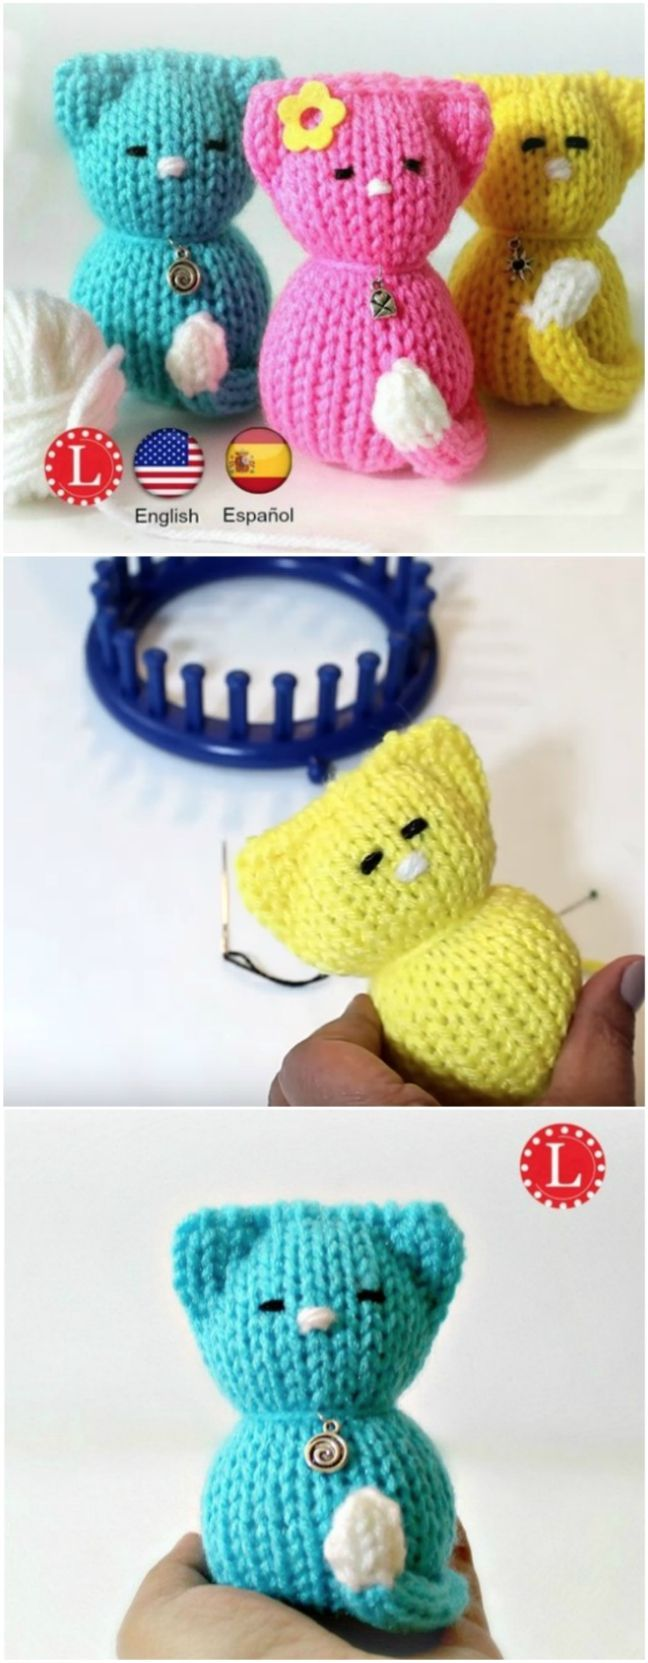 How To Loom Knit A Cat (Video Tutorial) | The WHOot